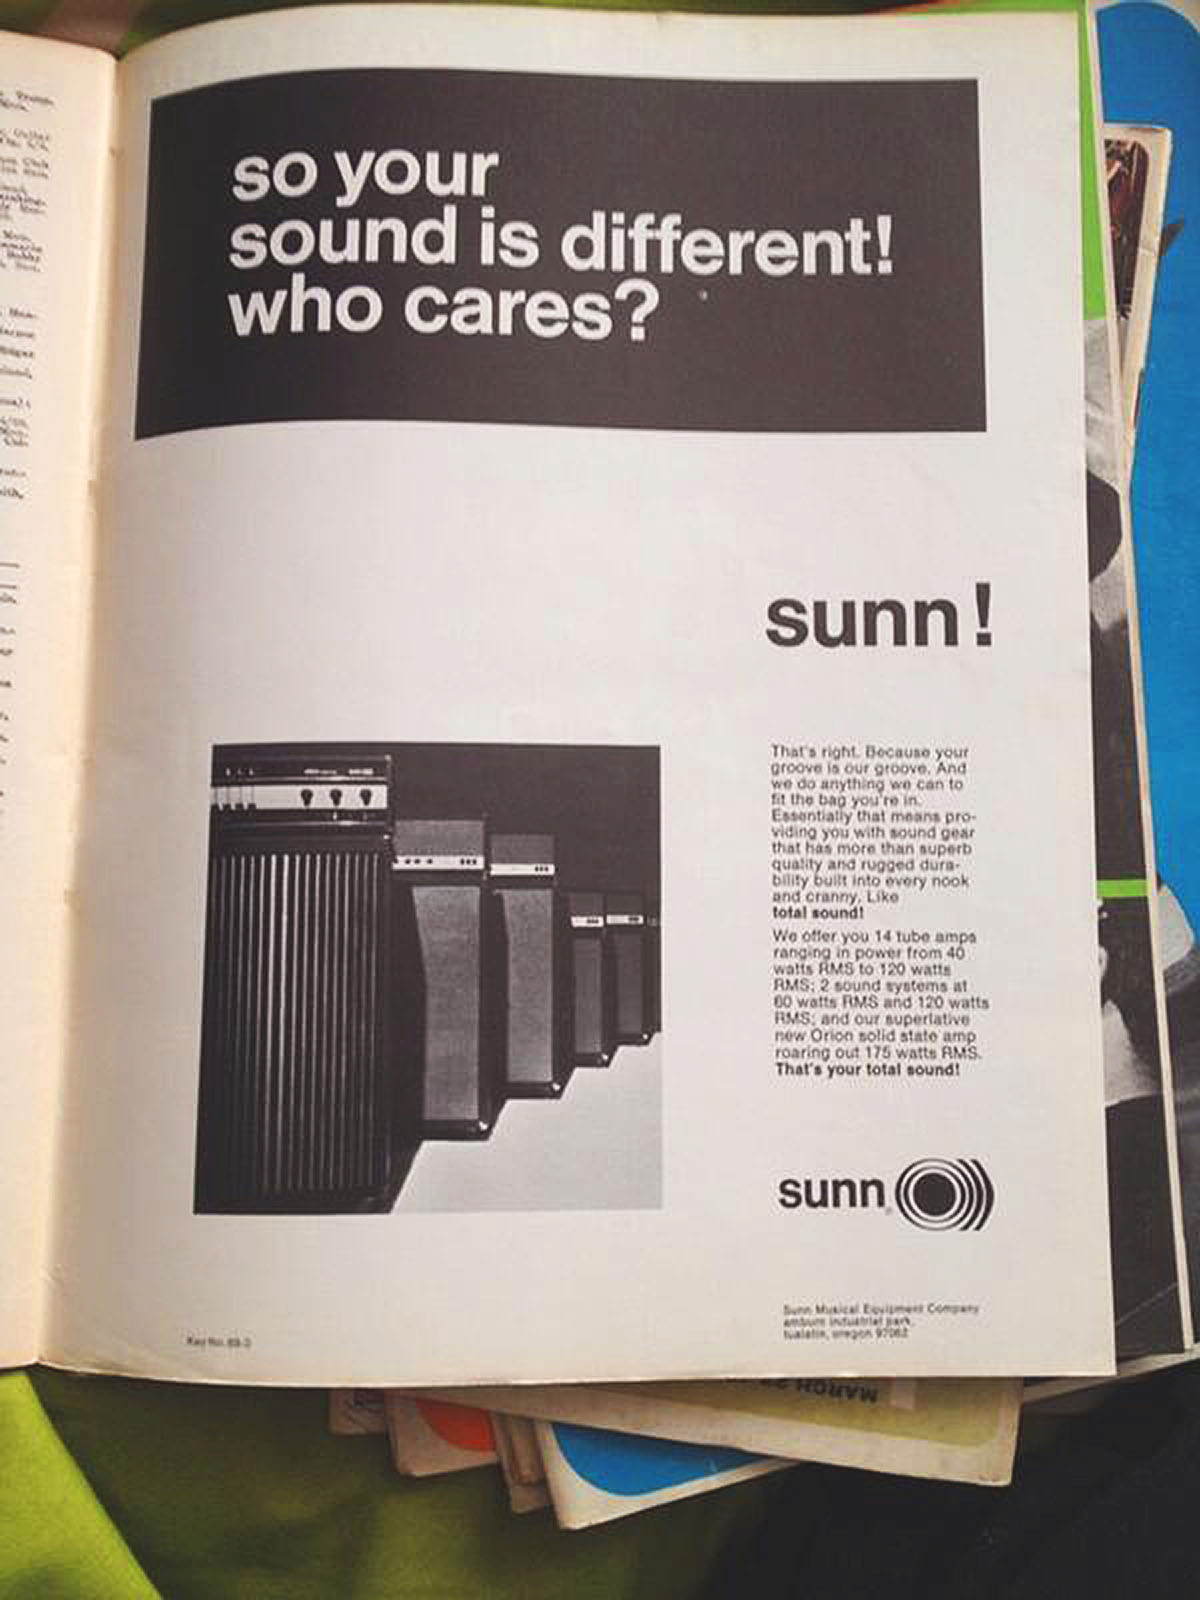 so your sound is different! who cares?    sunn!